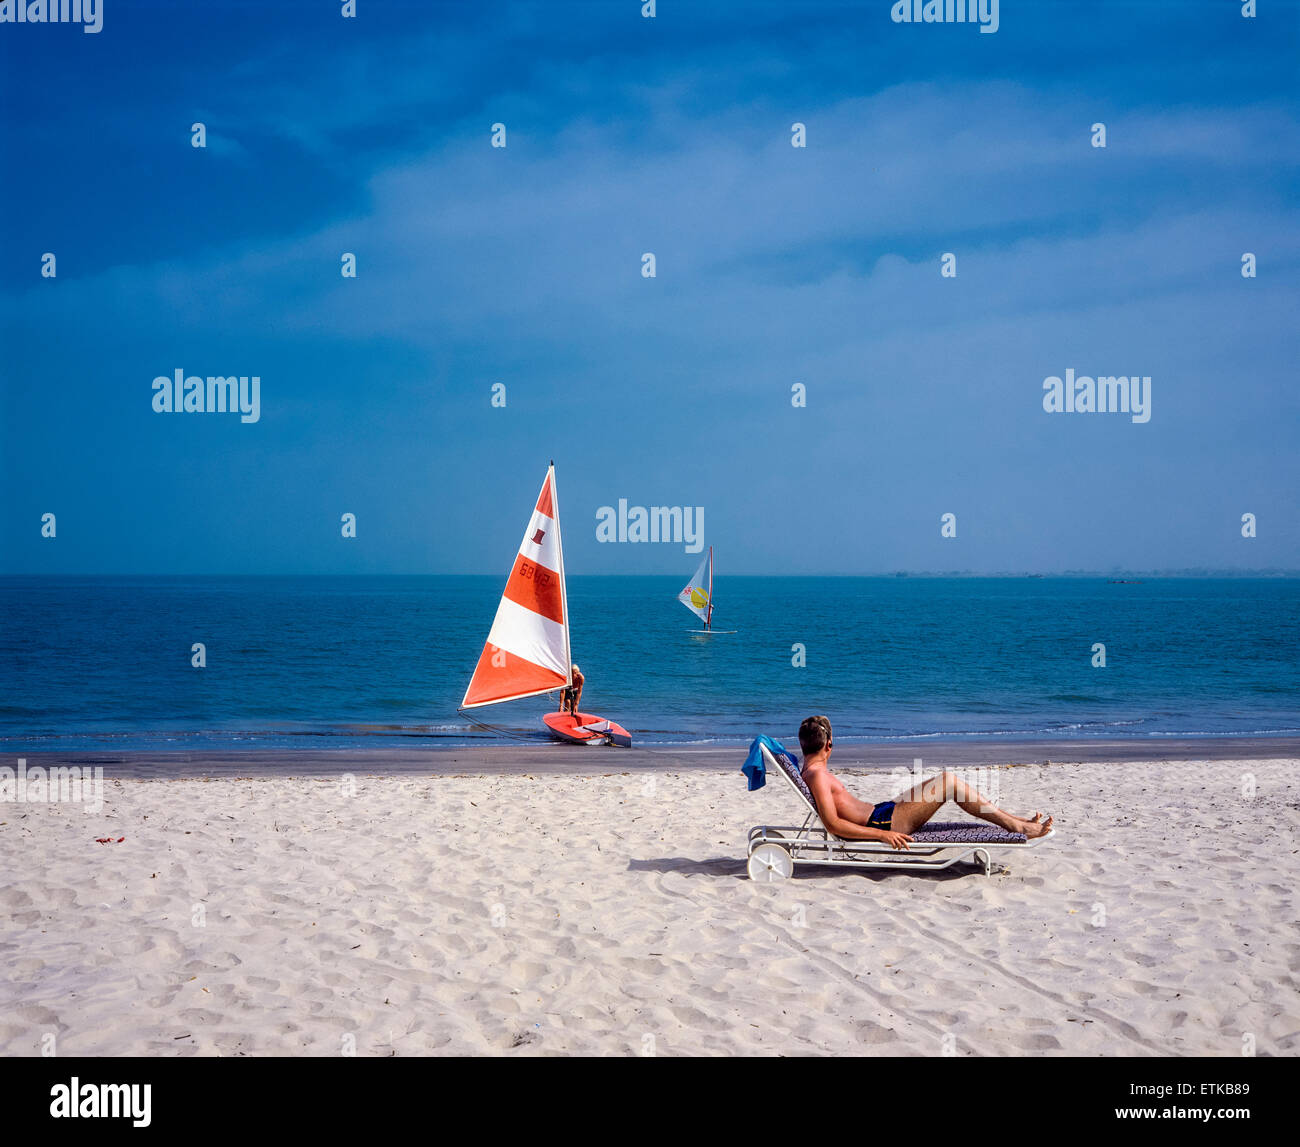 Holidaymaker sunbathing on beach, Gambia, West Africa - Stock Image